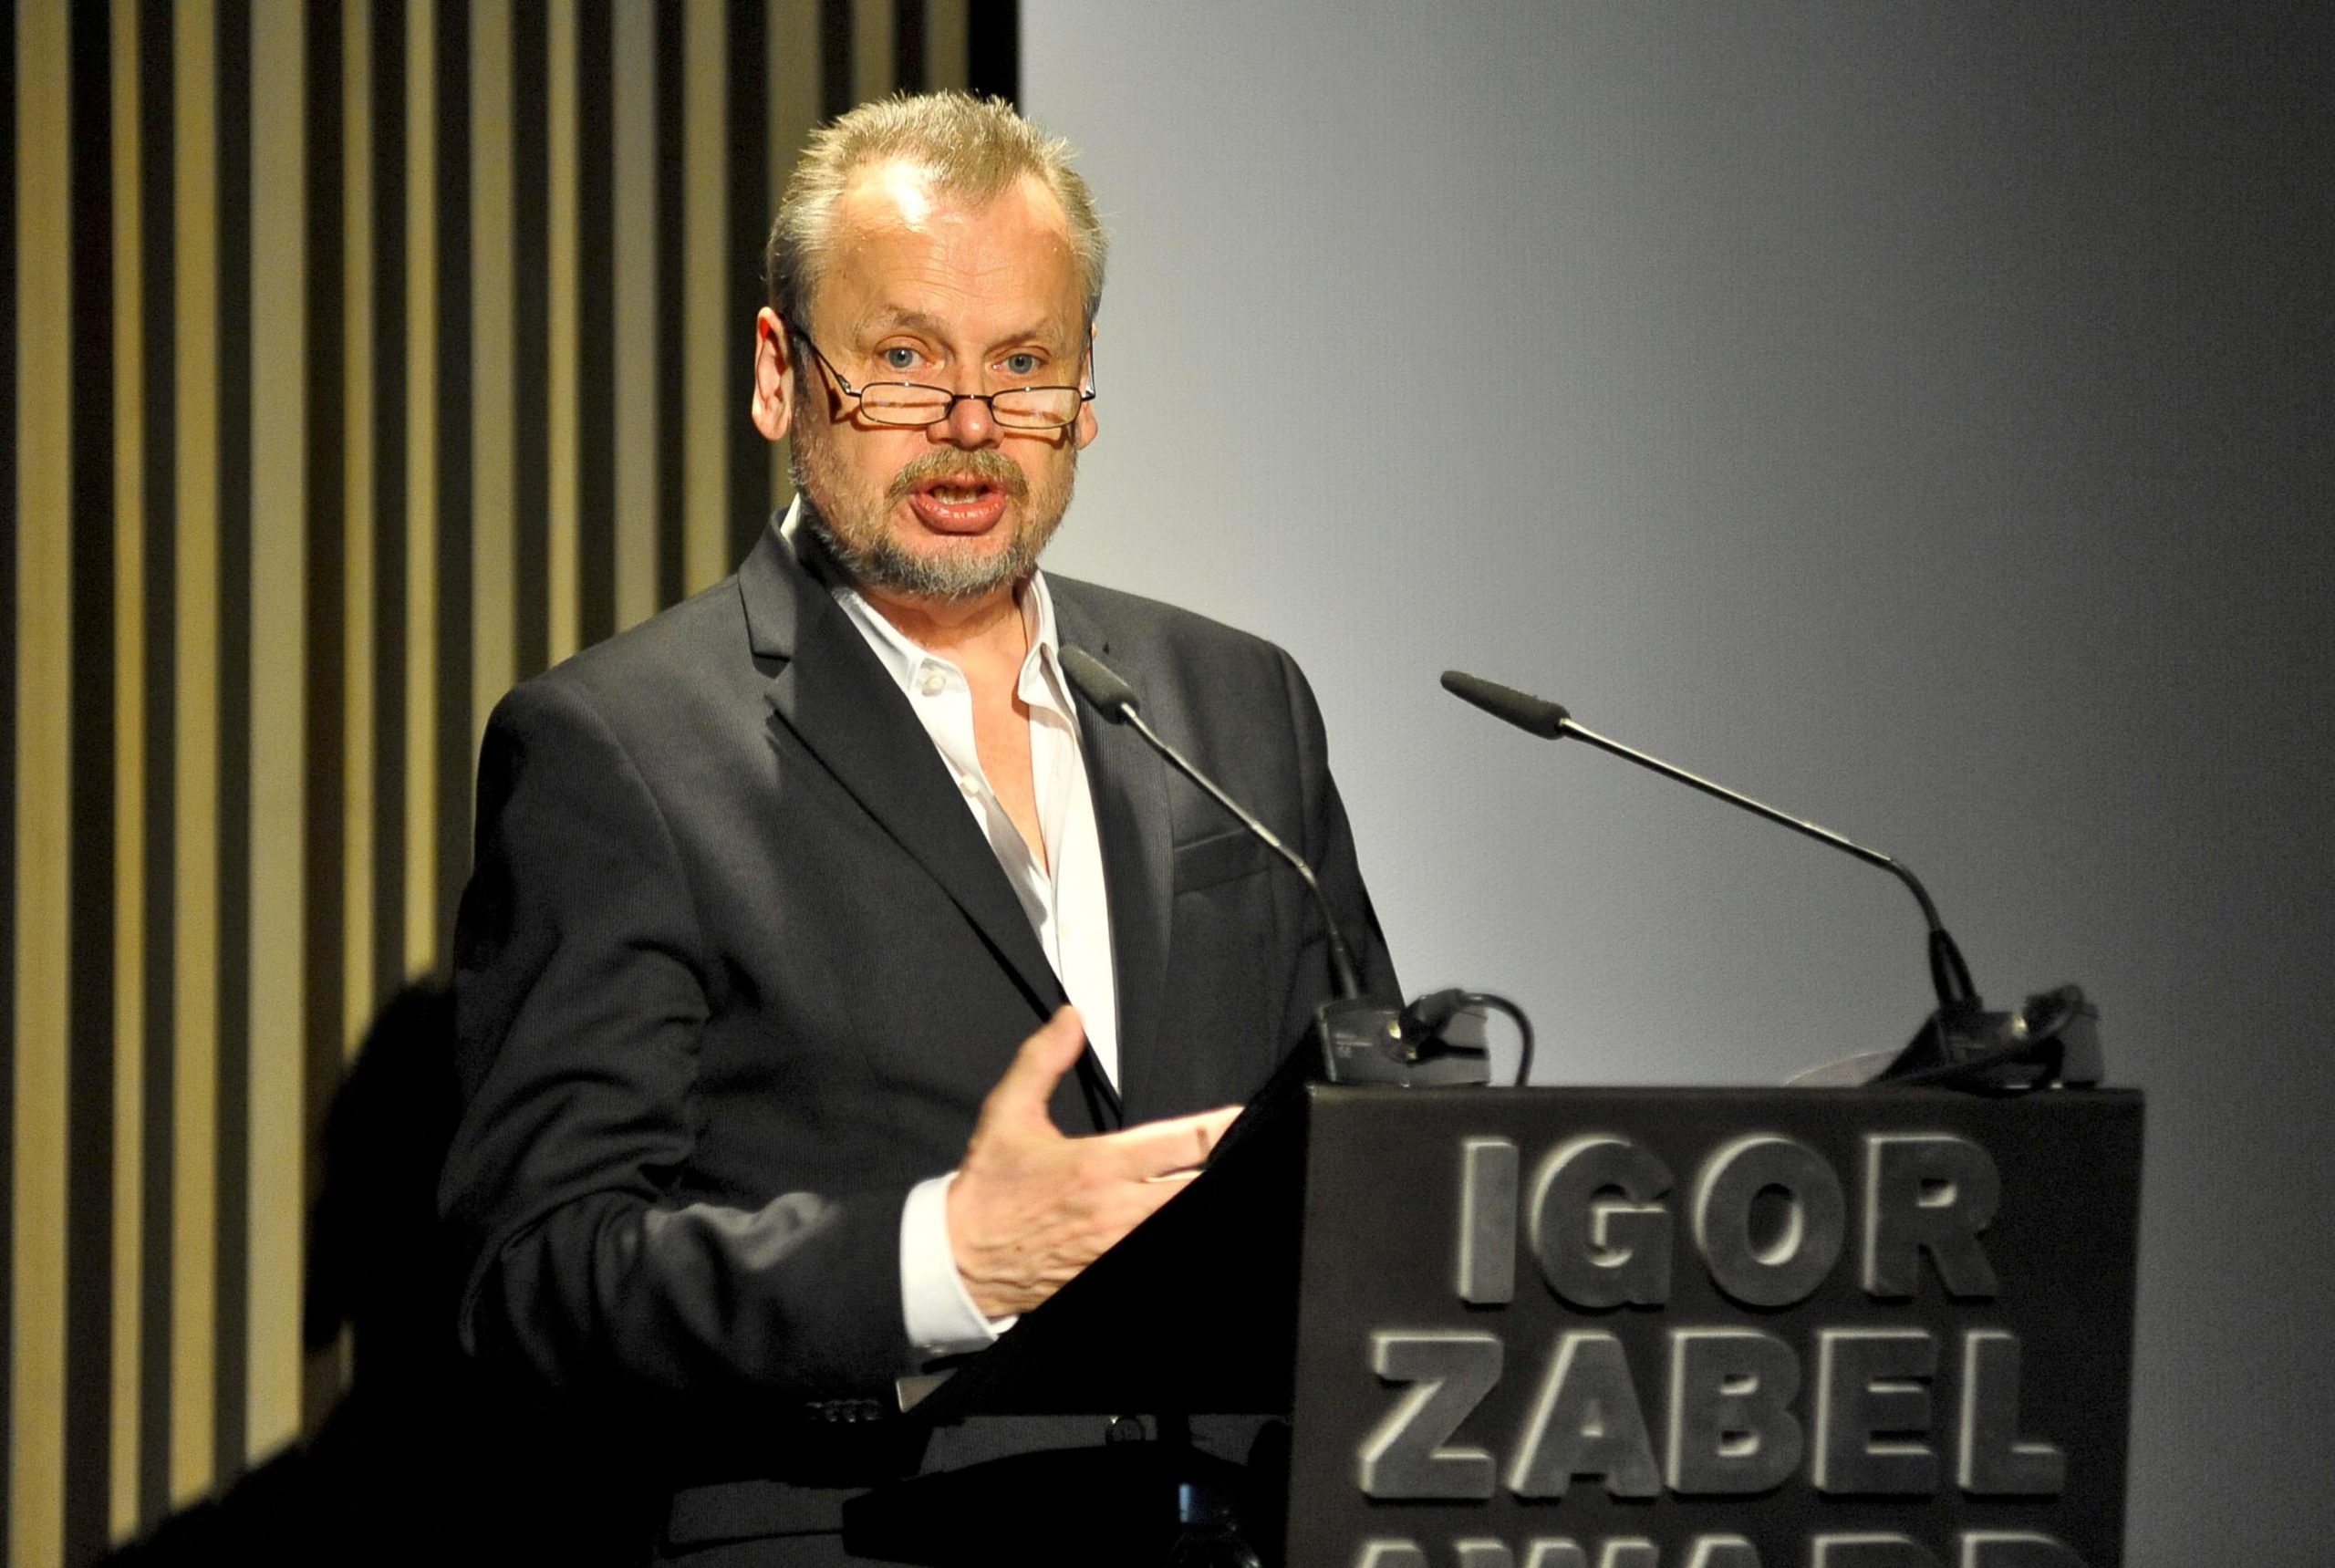 Piotr Piotrowski, winner of the Igor Zabel Award for Culture and Theory 2010. Photo: David Campos